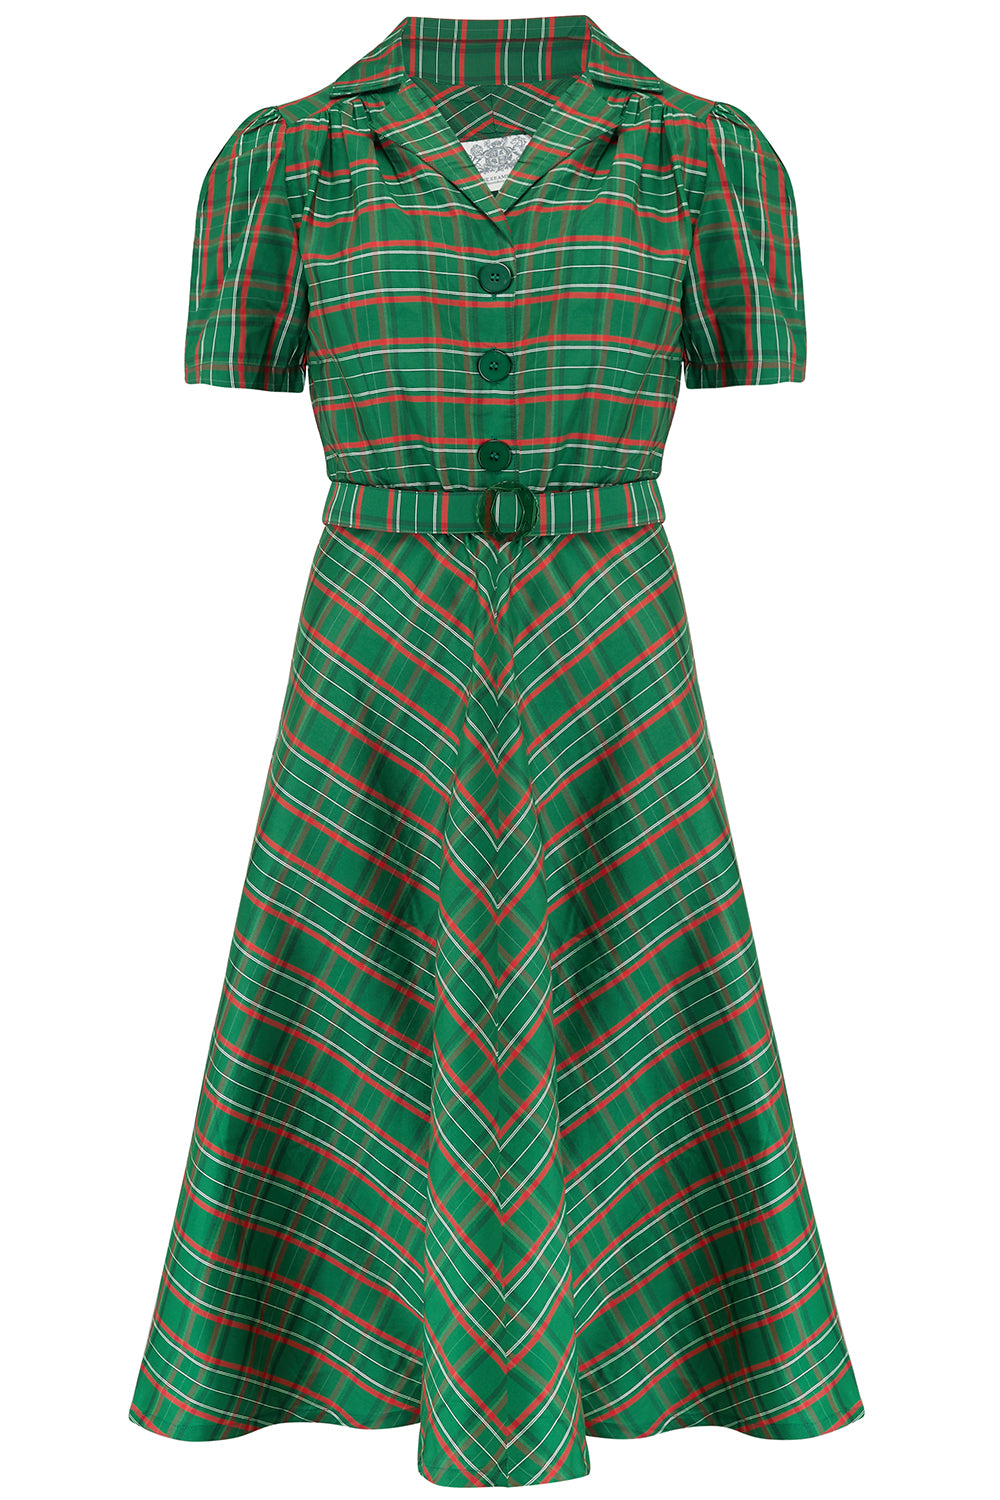 "the seamstress of bloomsbury ""Lisa"" Tea Dress in Green Taffeta Tartan, Authentic 1940s Vintage Style"